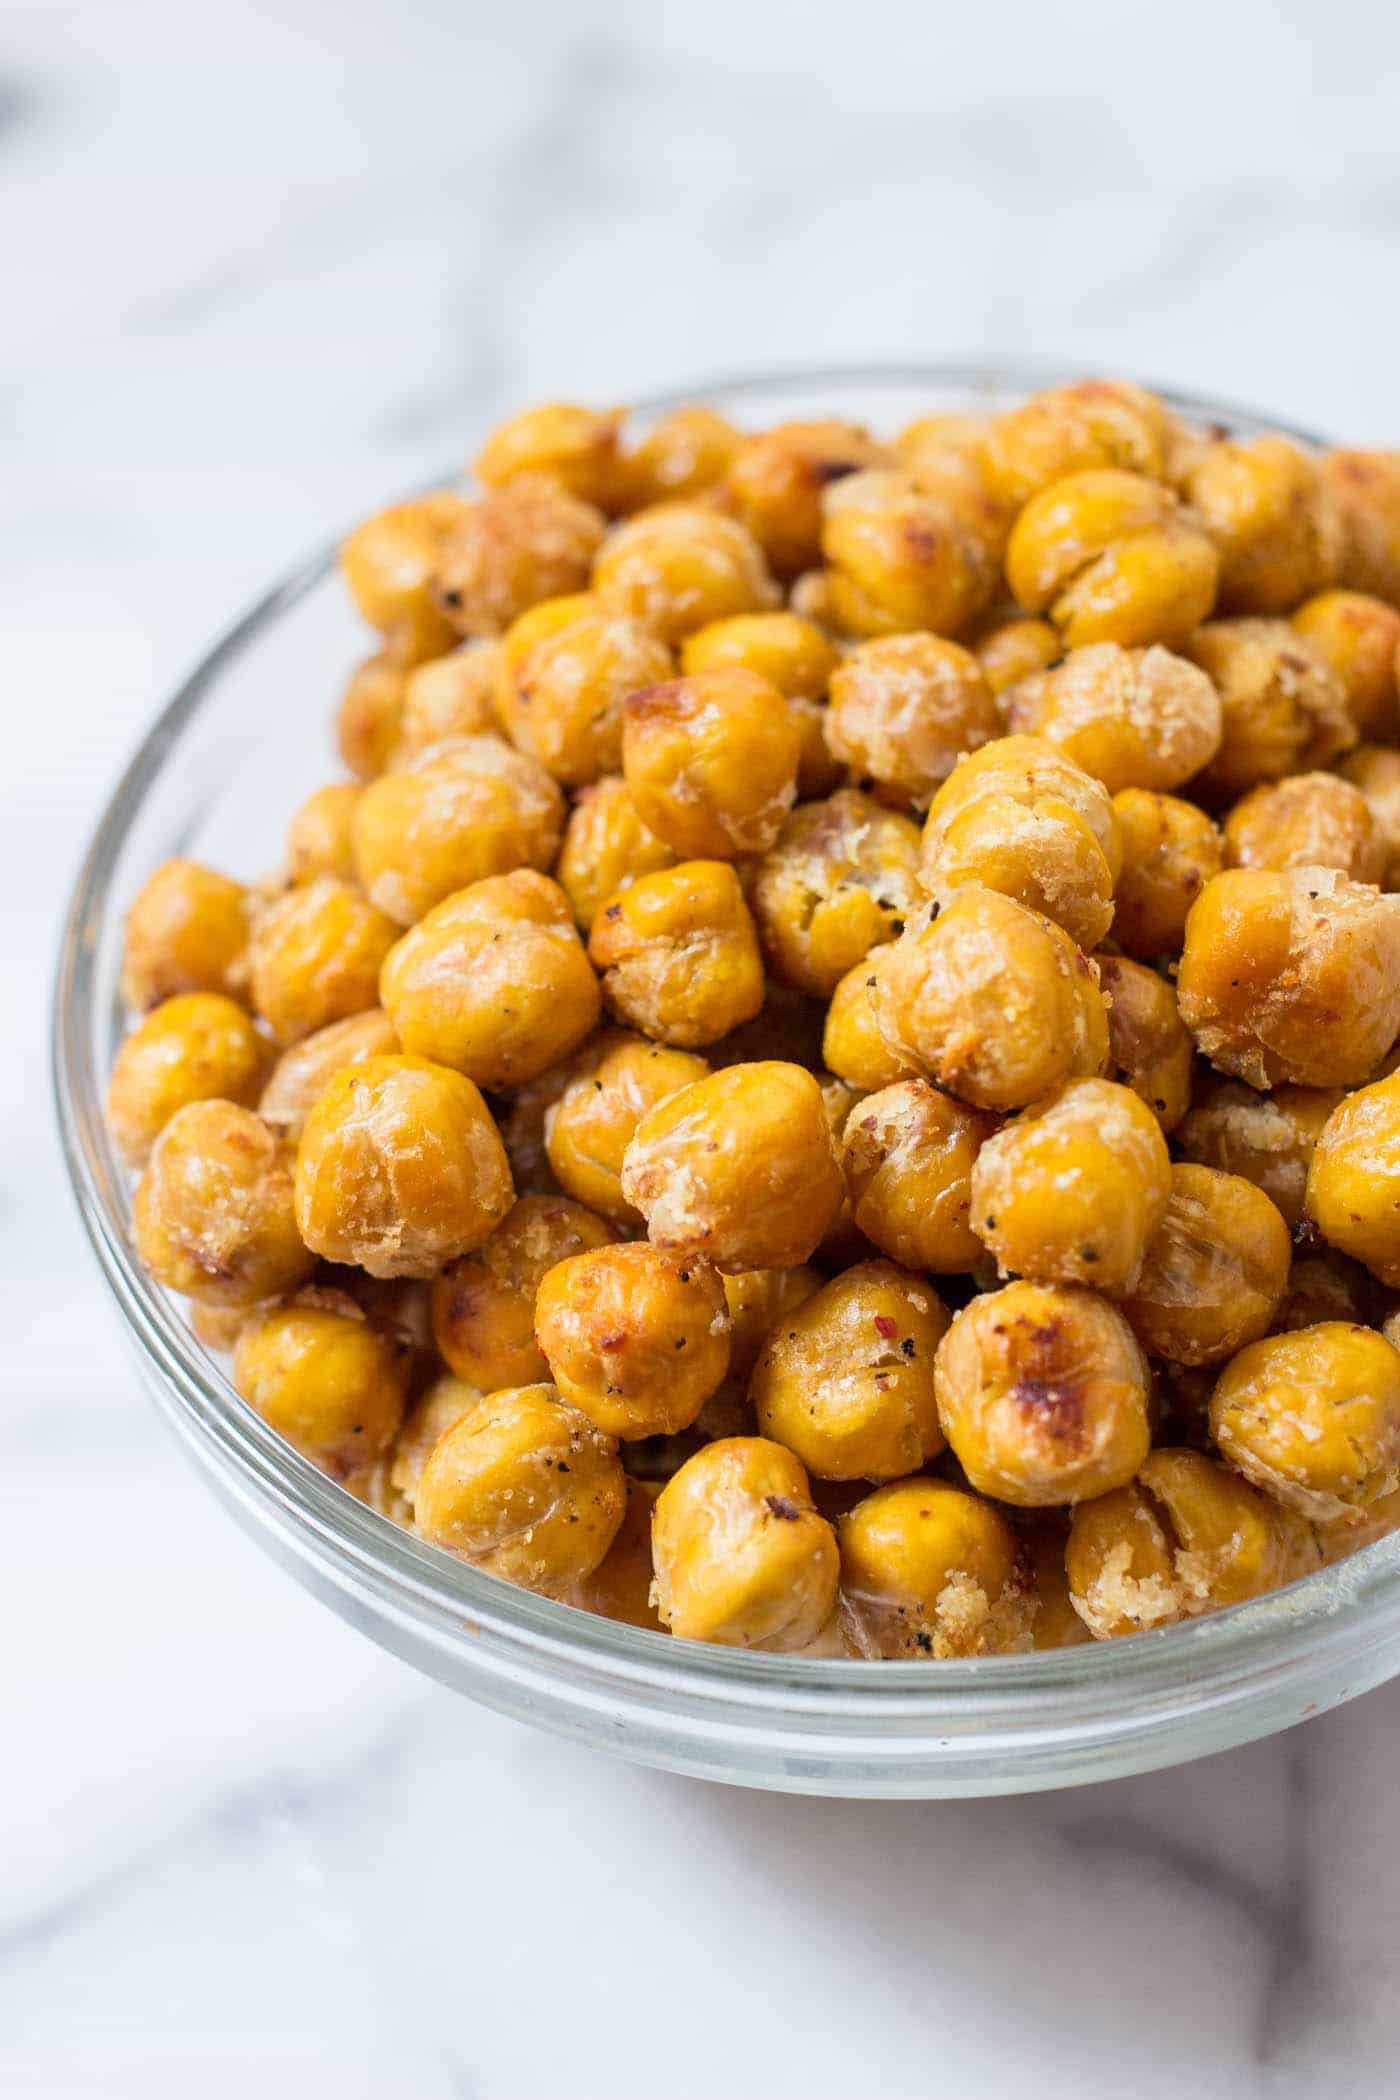 Garlicky Crispy Roasted Chickpeas -- only 5 ingredients and SO DELICIOUS. You just need chickpeas, coconut oil, garlic powder, salt + pepper....that's it!